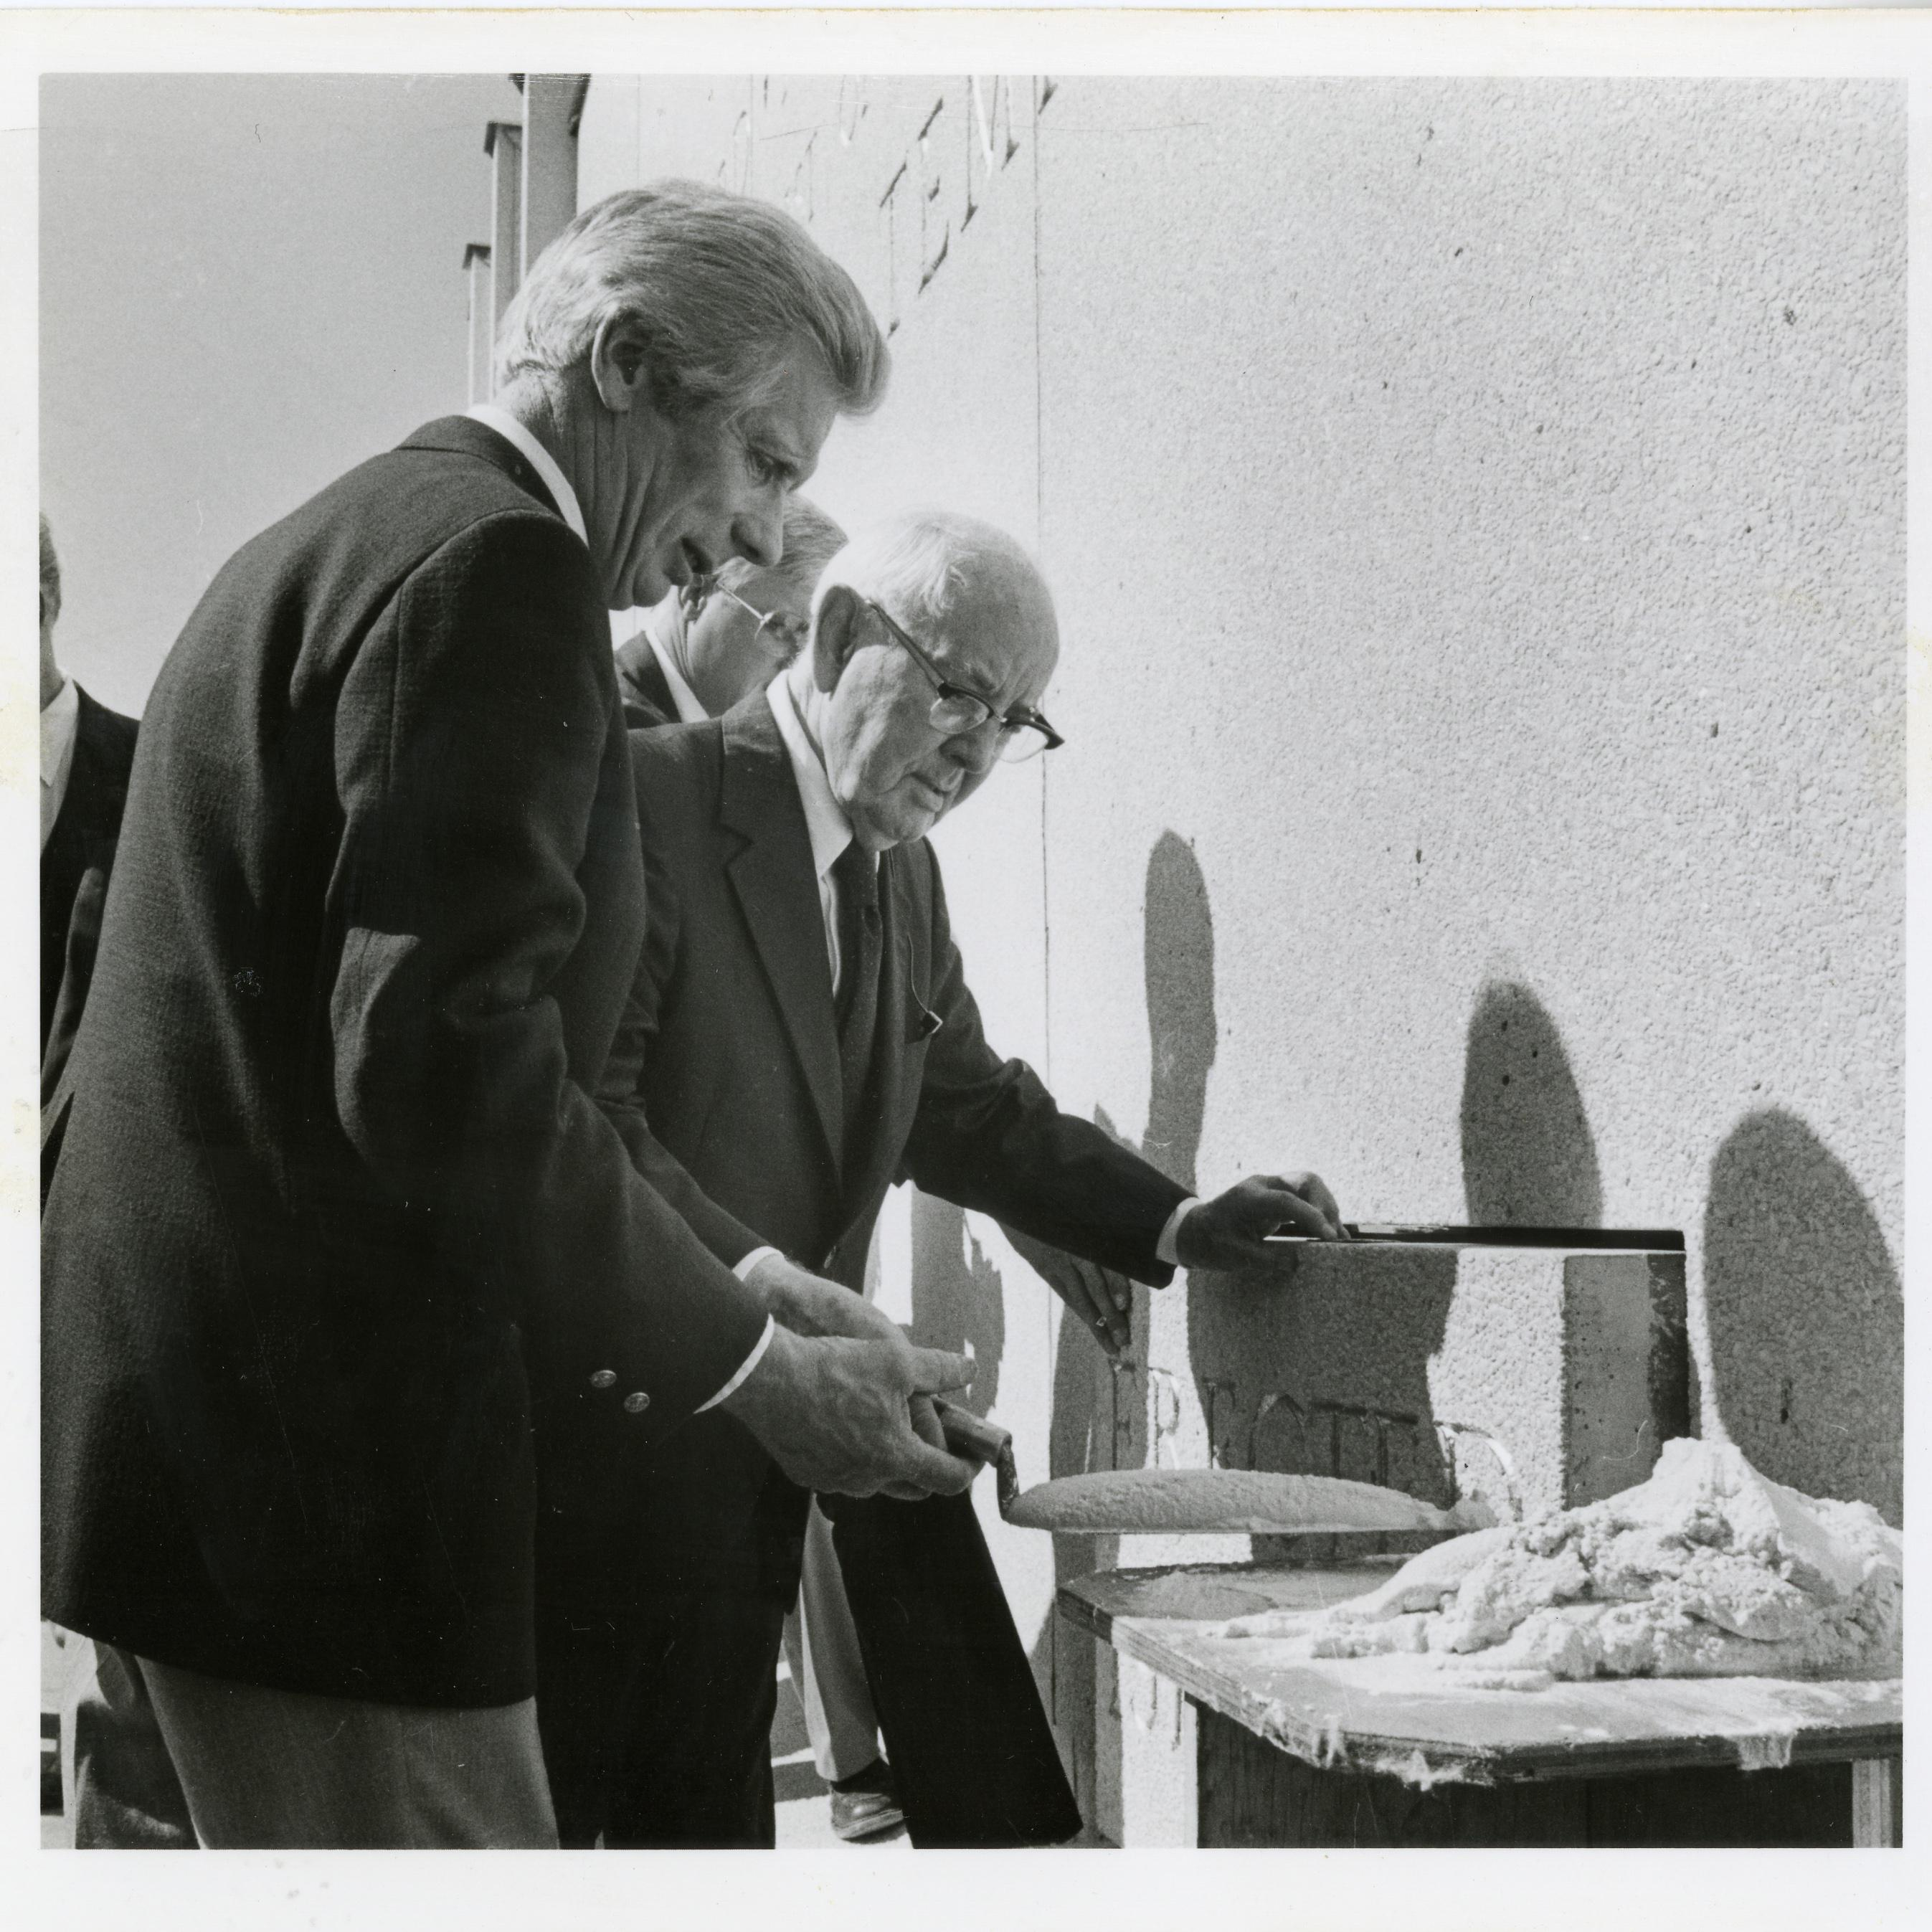 Church President Spencer W. Kimball, seals the cornerstone prior to dedicating the Jordan River Utah Temple in 1981. ©ALL RIGHTS RESERVED.